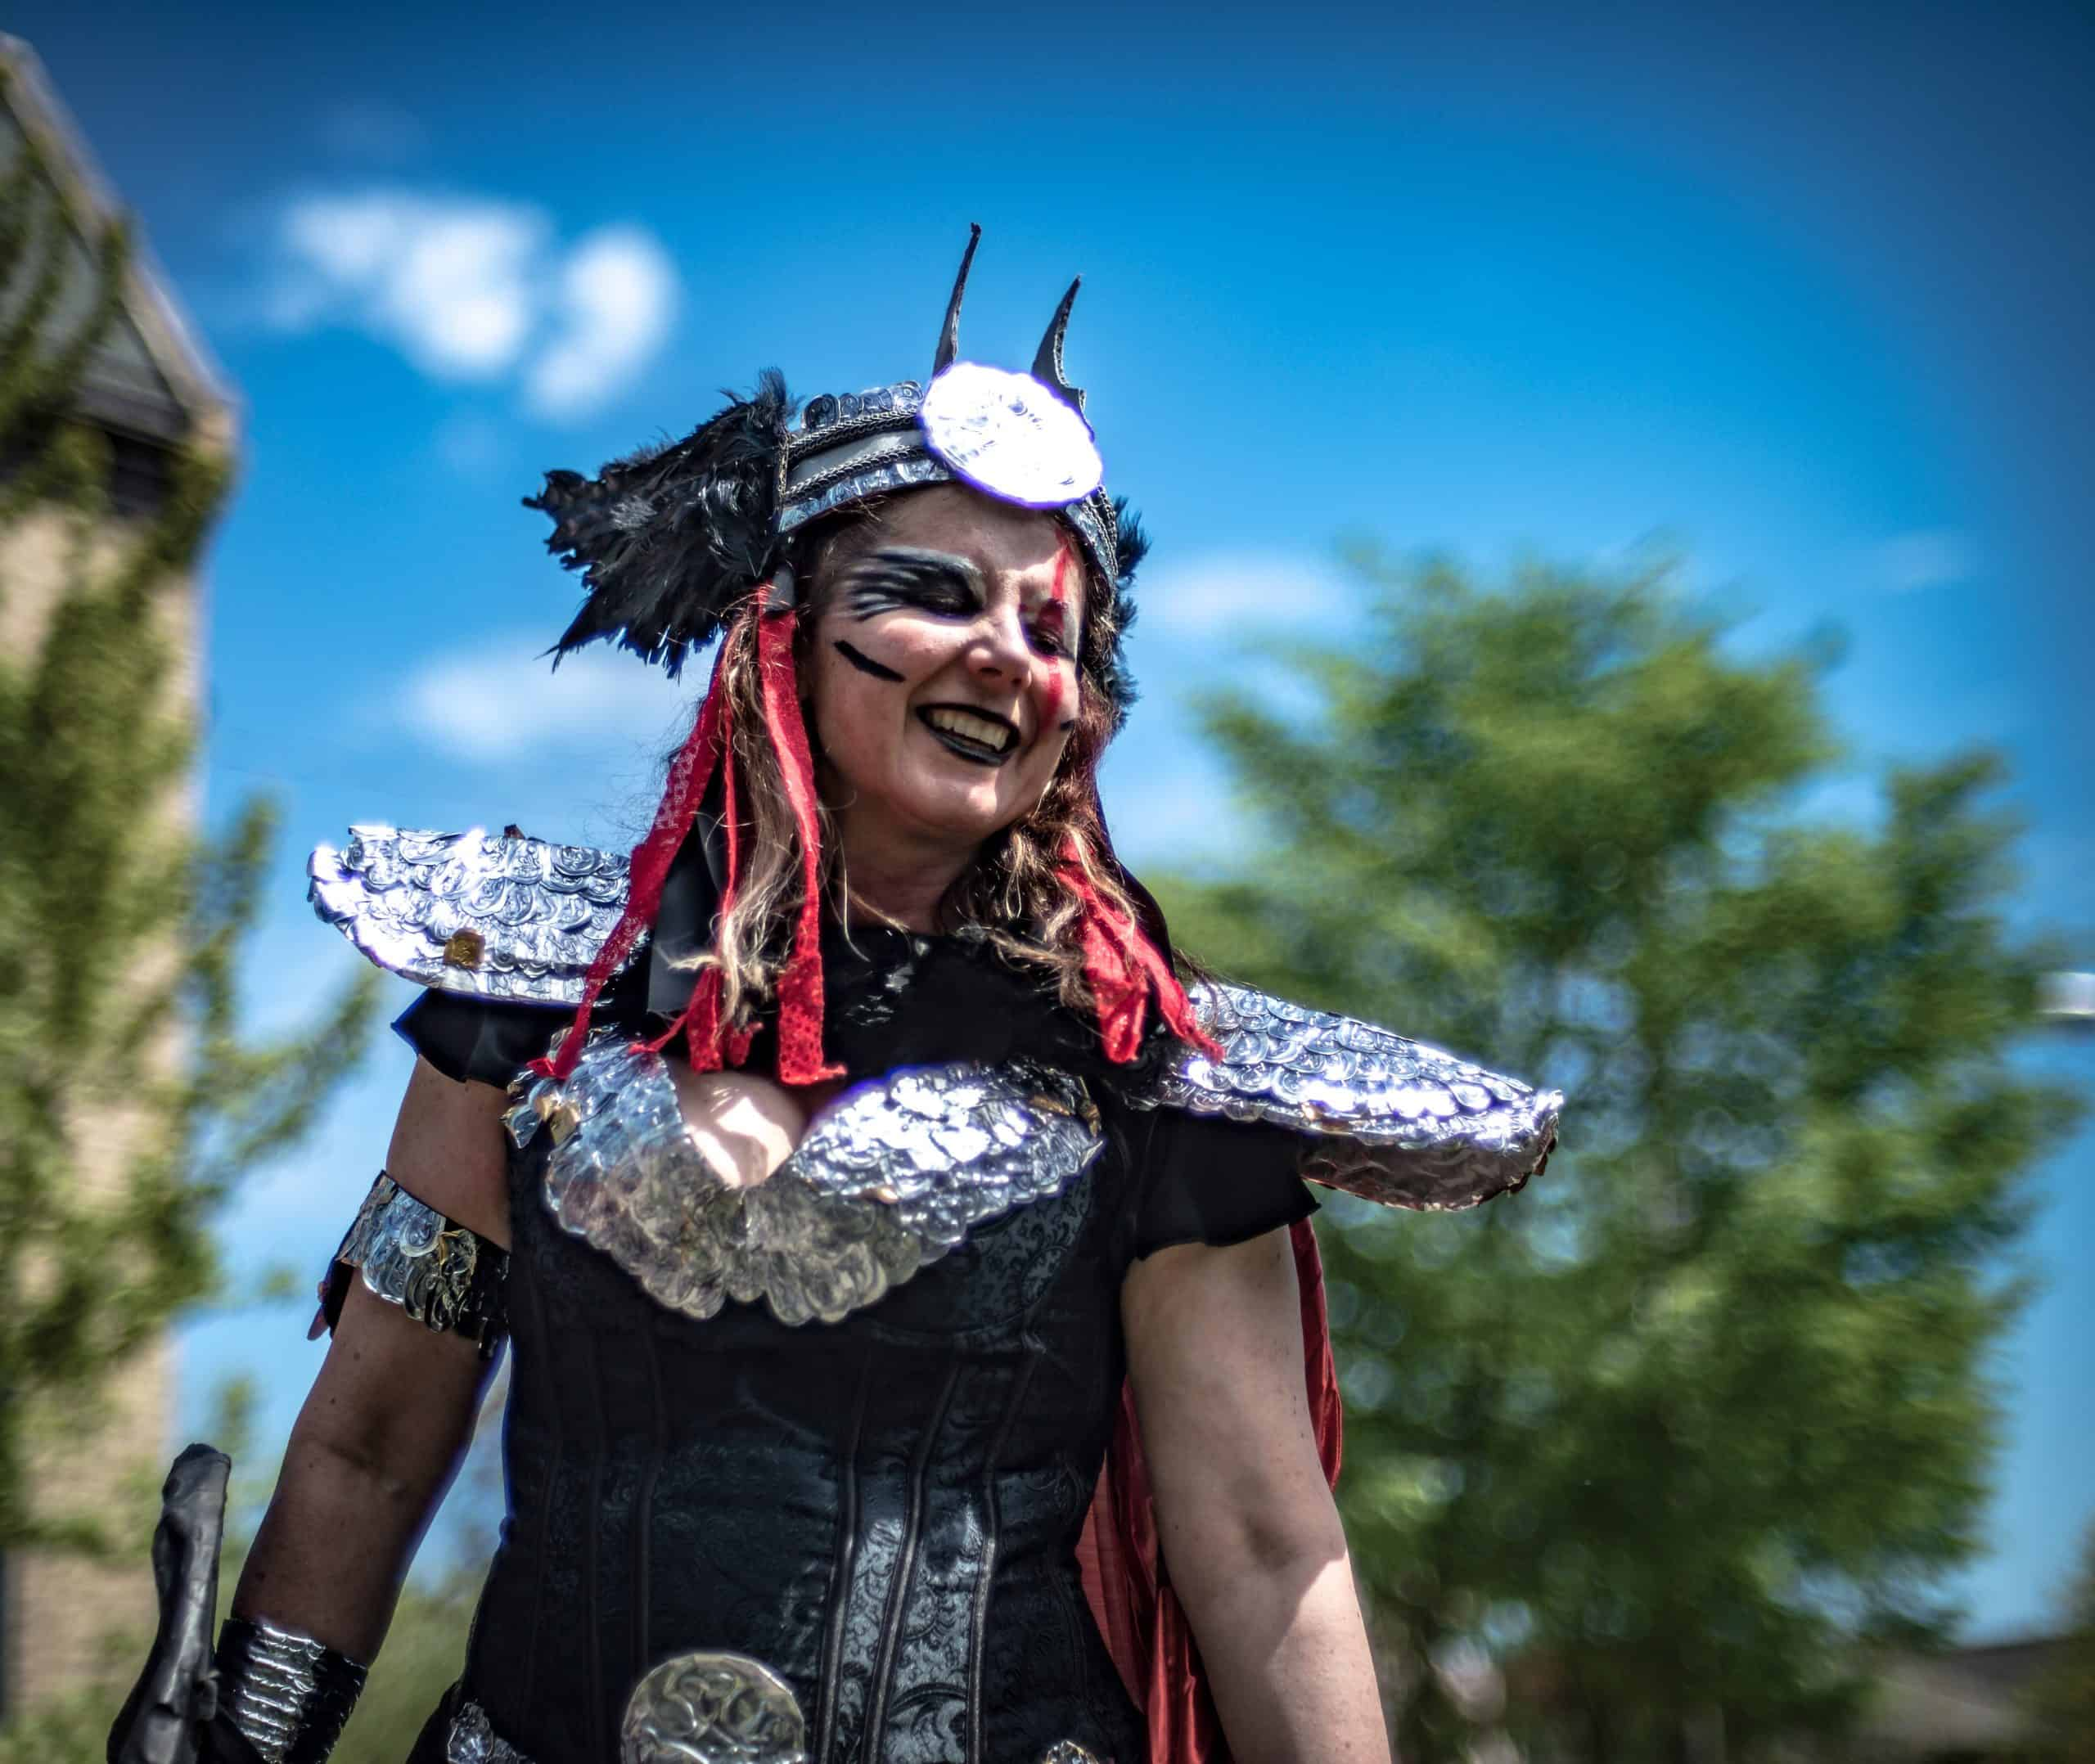 Valkyrie Bodice and helmet, designed for May Day Parade 2017. Photo credit: Max Haynes